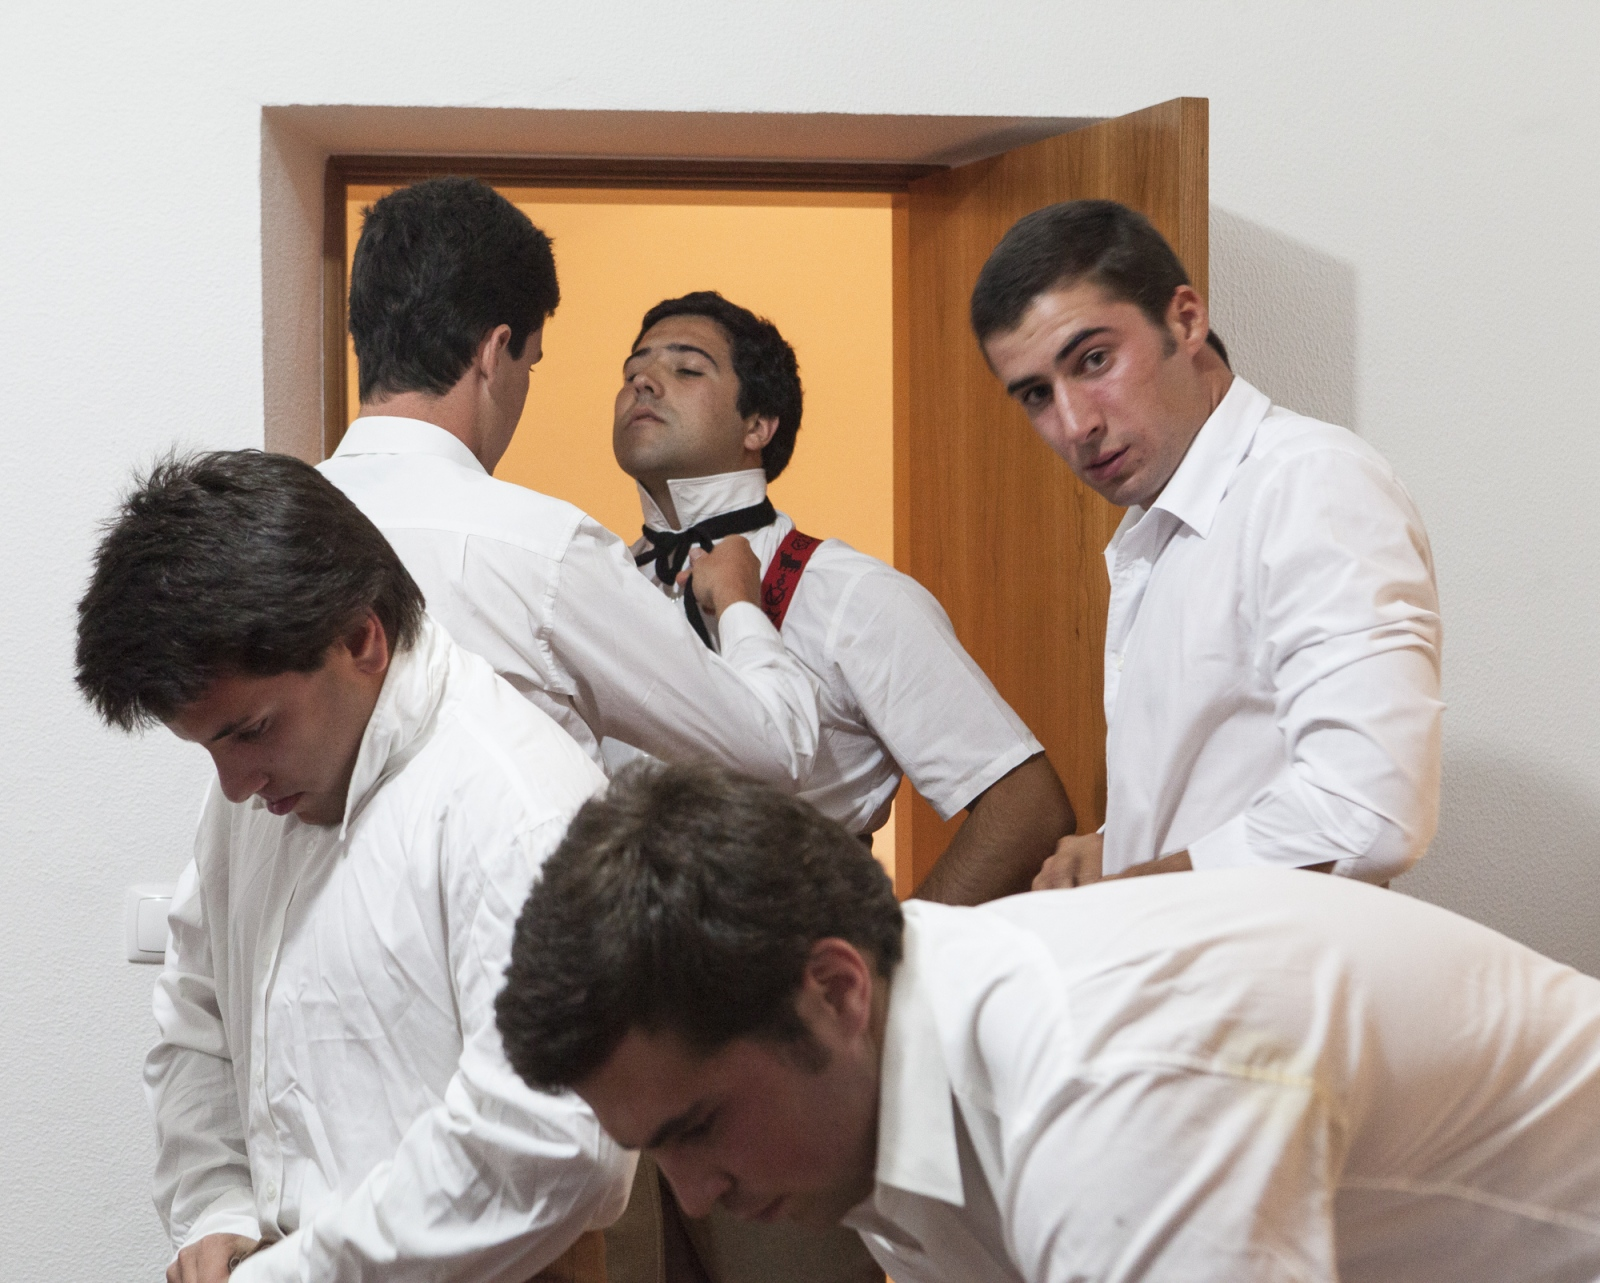 Members of the group of Forcados of Évora dress themselves in the house of an ex-forcado before the bullfight. When the arenas don't have dressing rooms, groups use the house of friends or old members to keep the costs down.